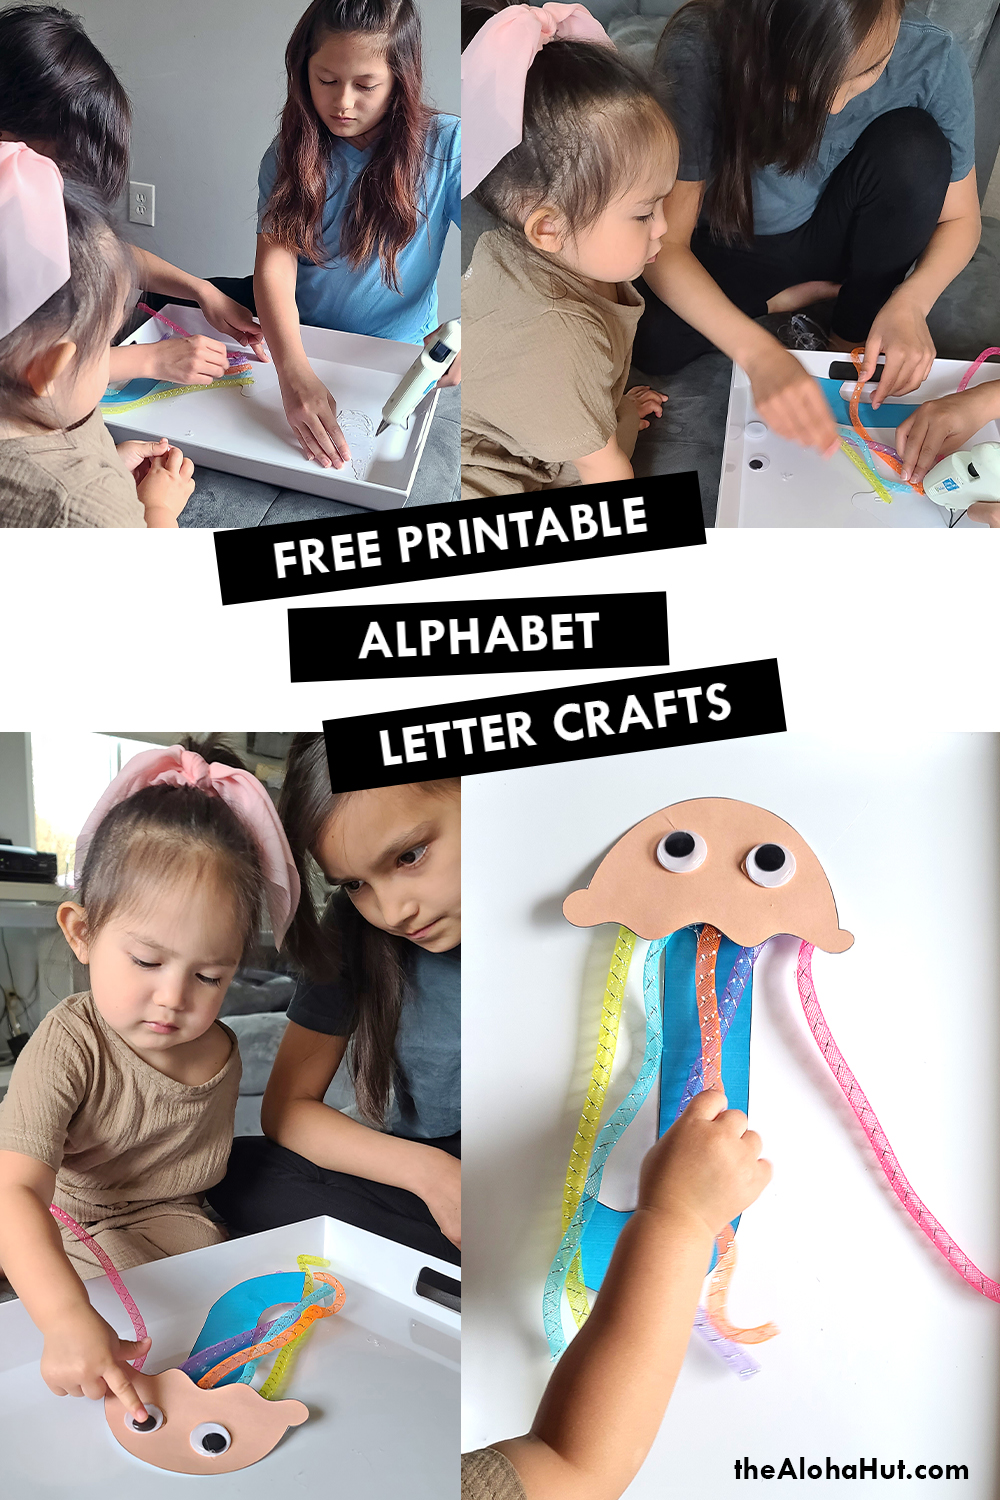 Alphabet Letter Crafts - Letter J - free printable by the Aloha Hut